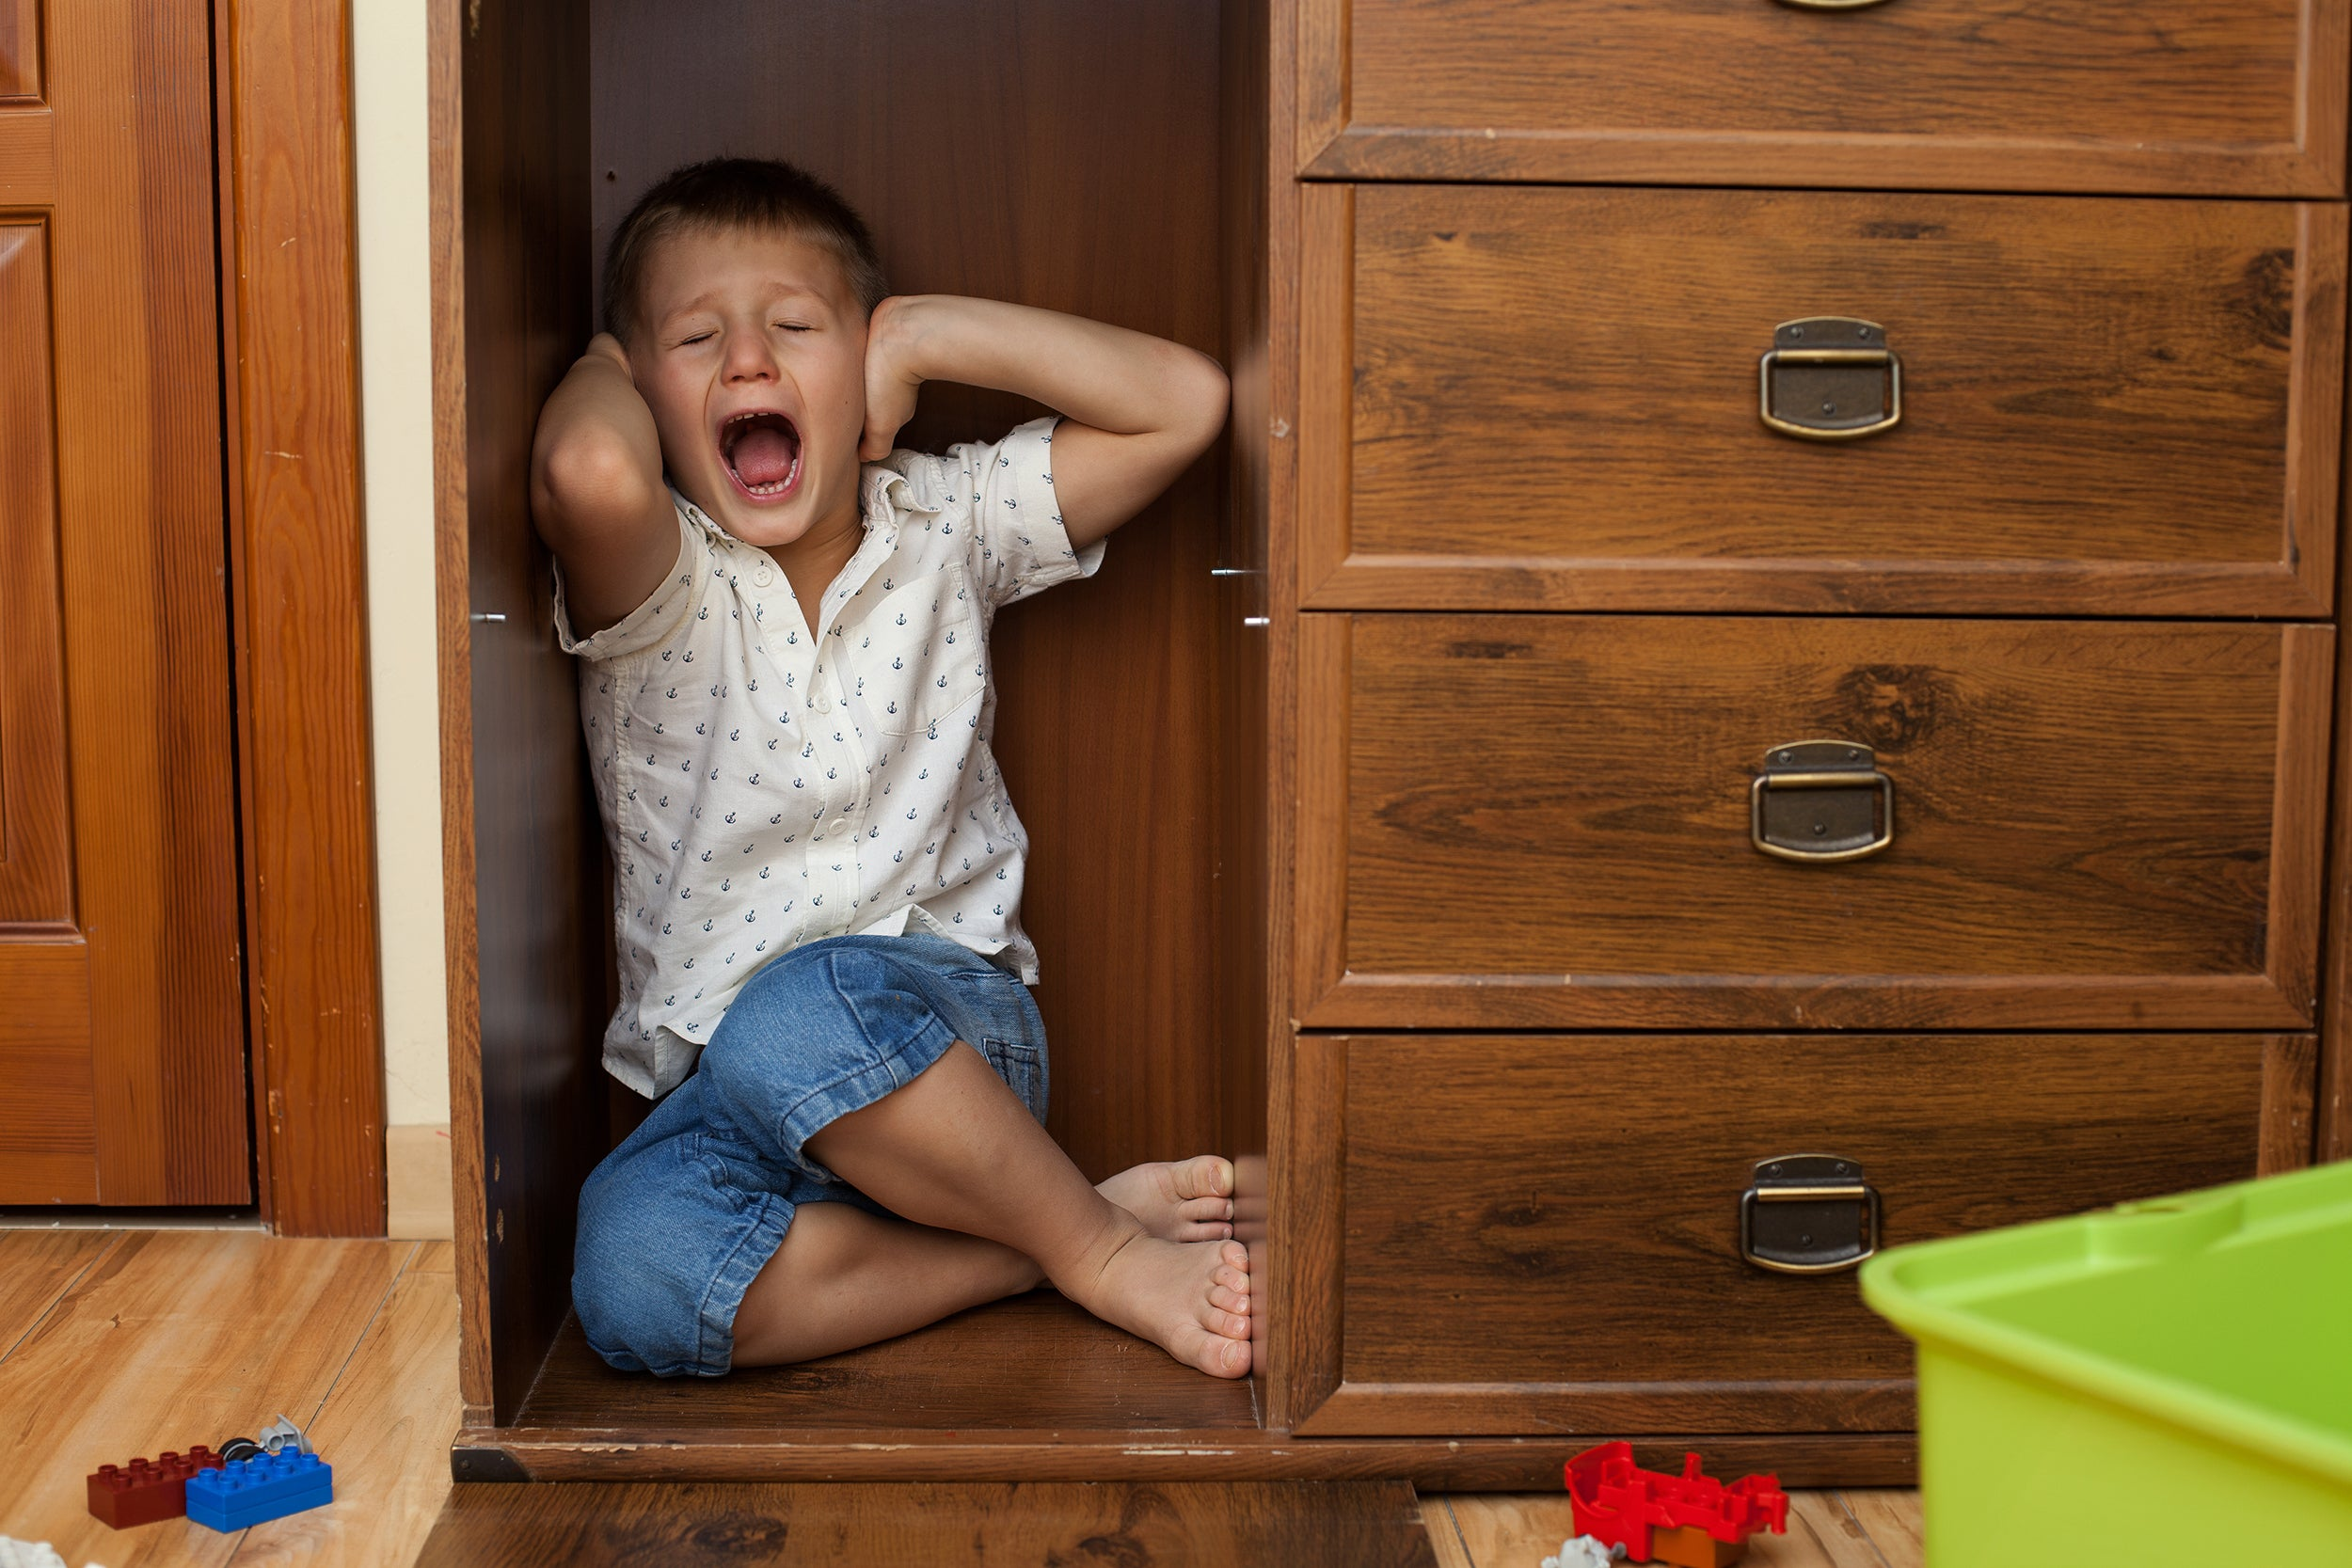 5 Signs of Stress in Children - being aggressive